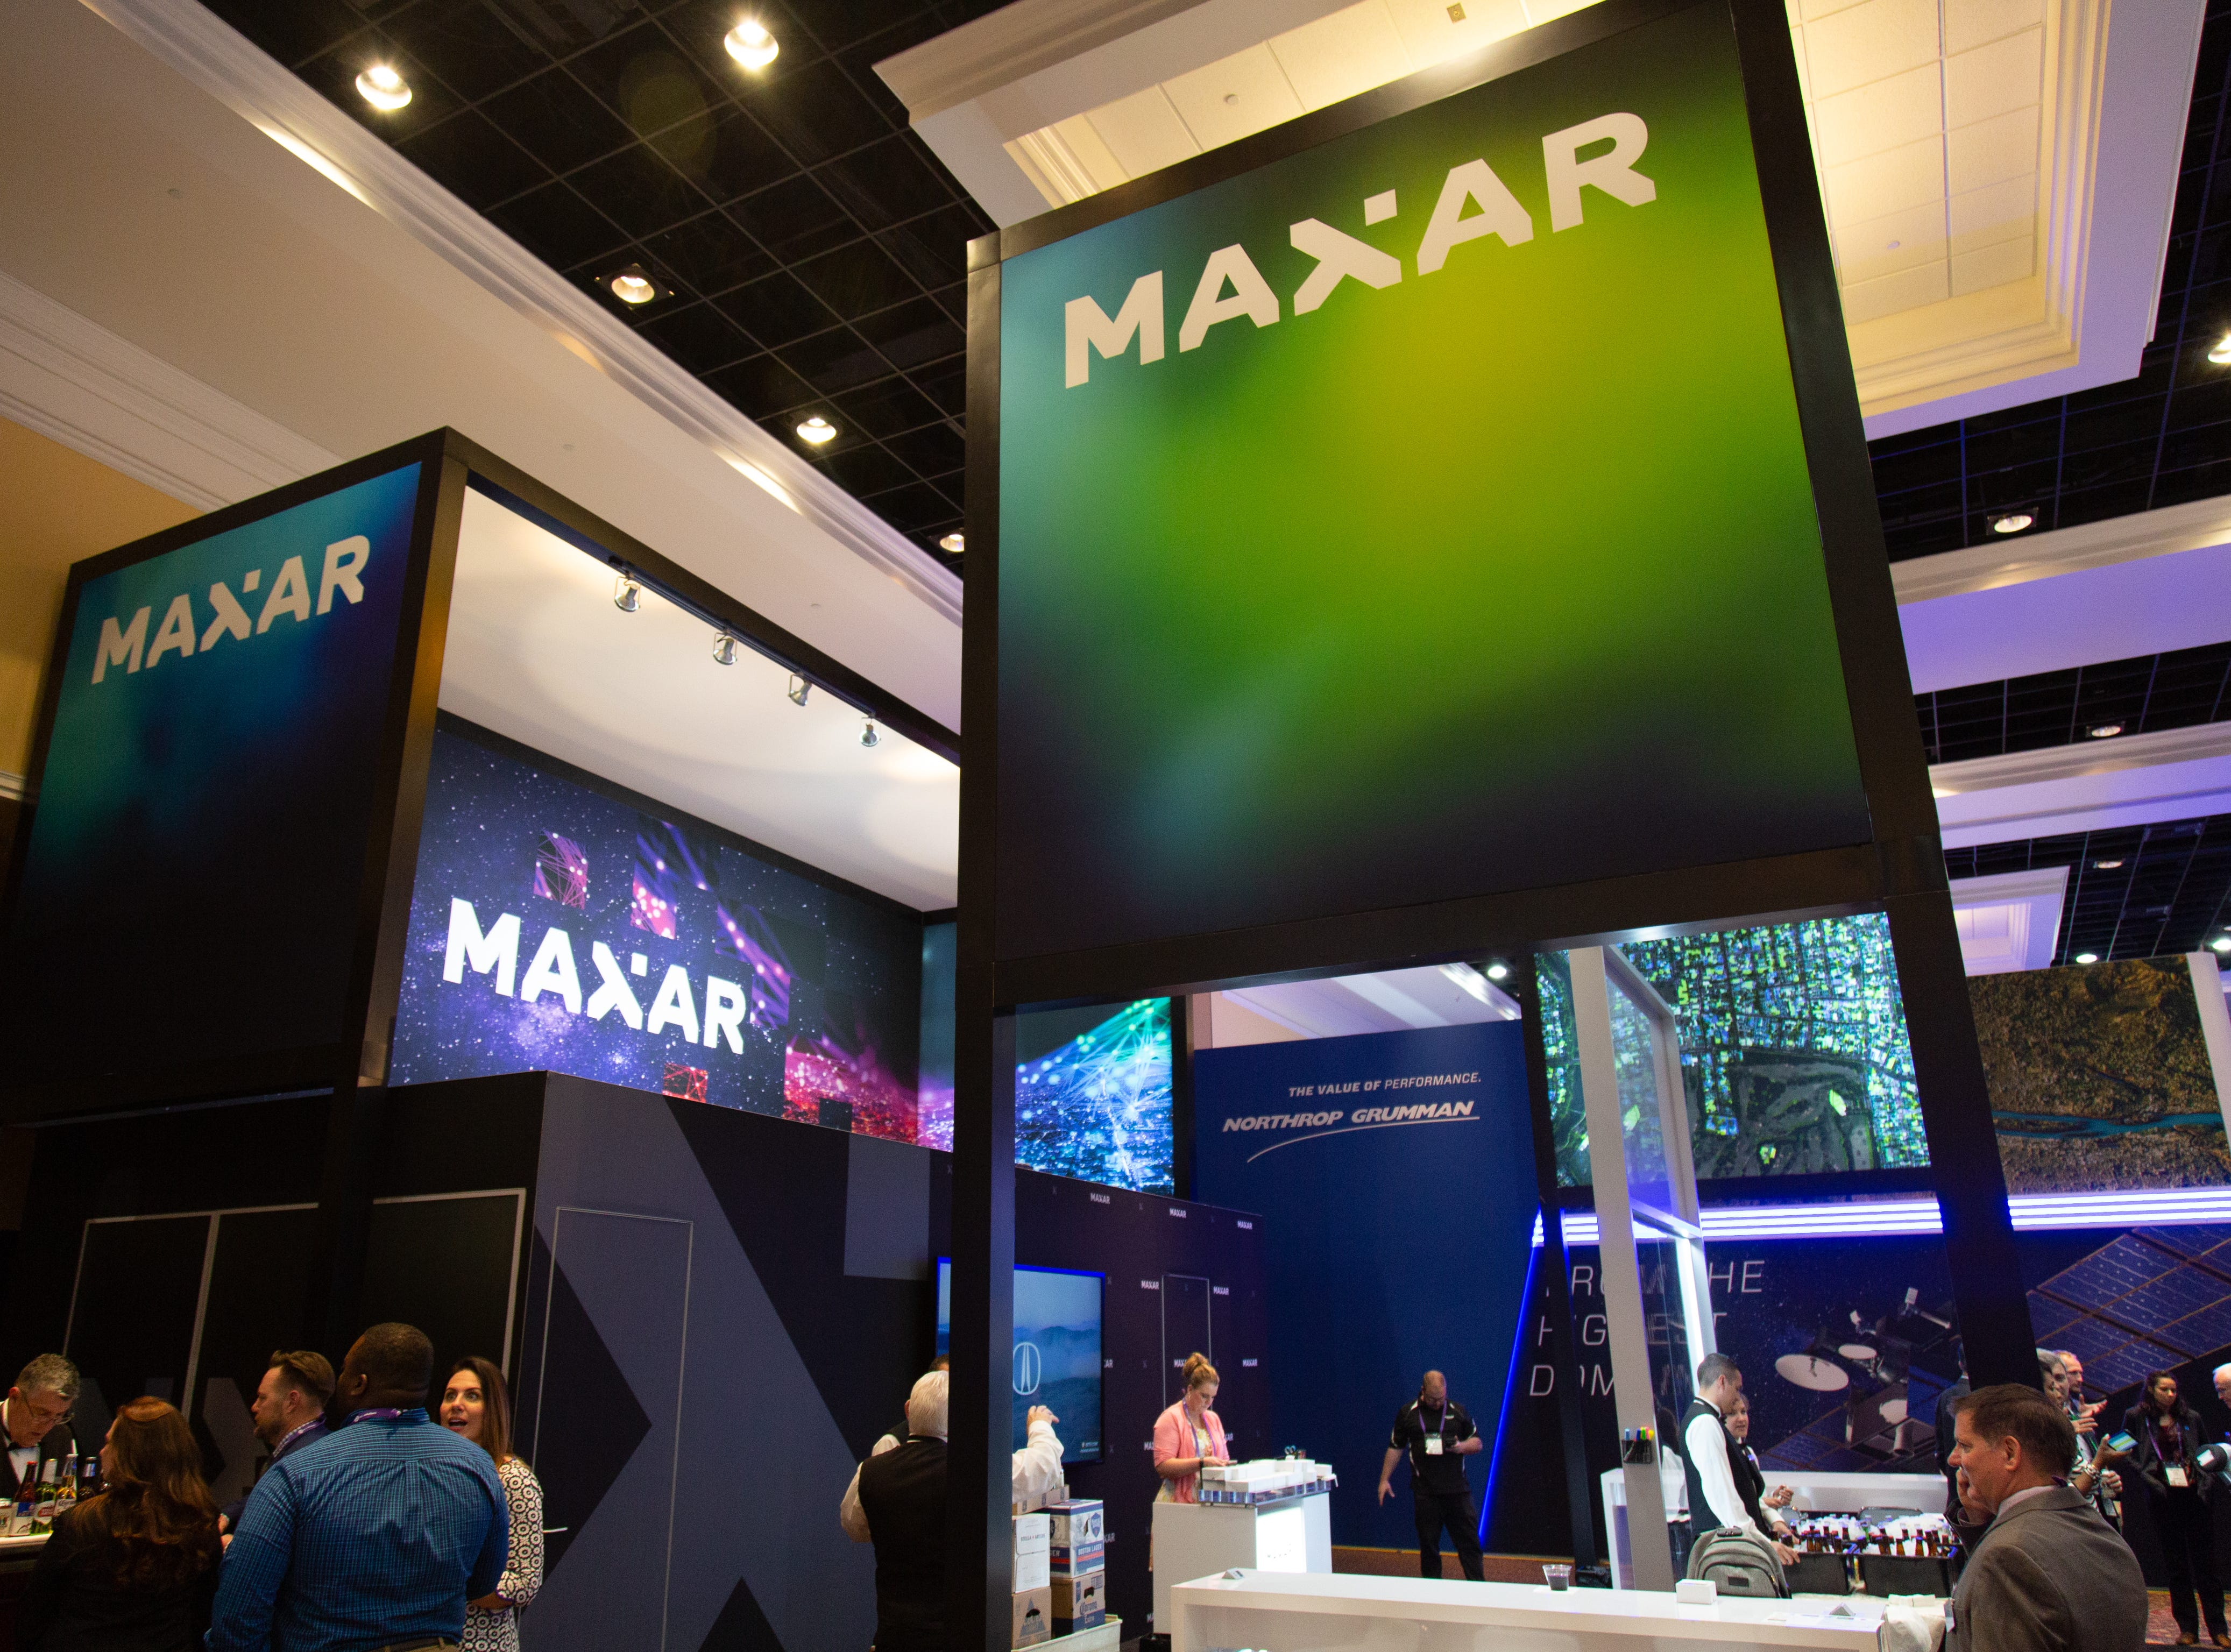 Maxar's booth at the 35th Space Symposium.